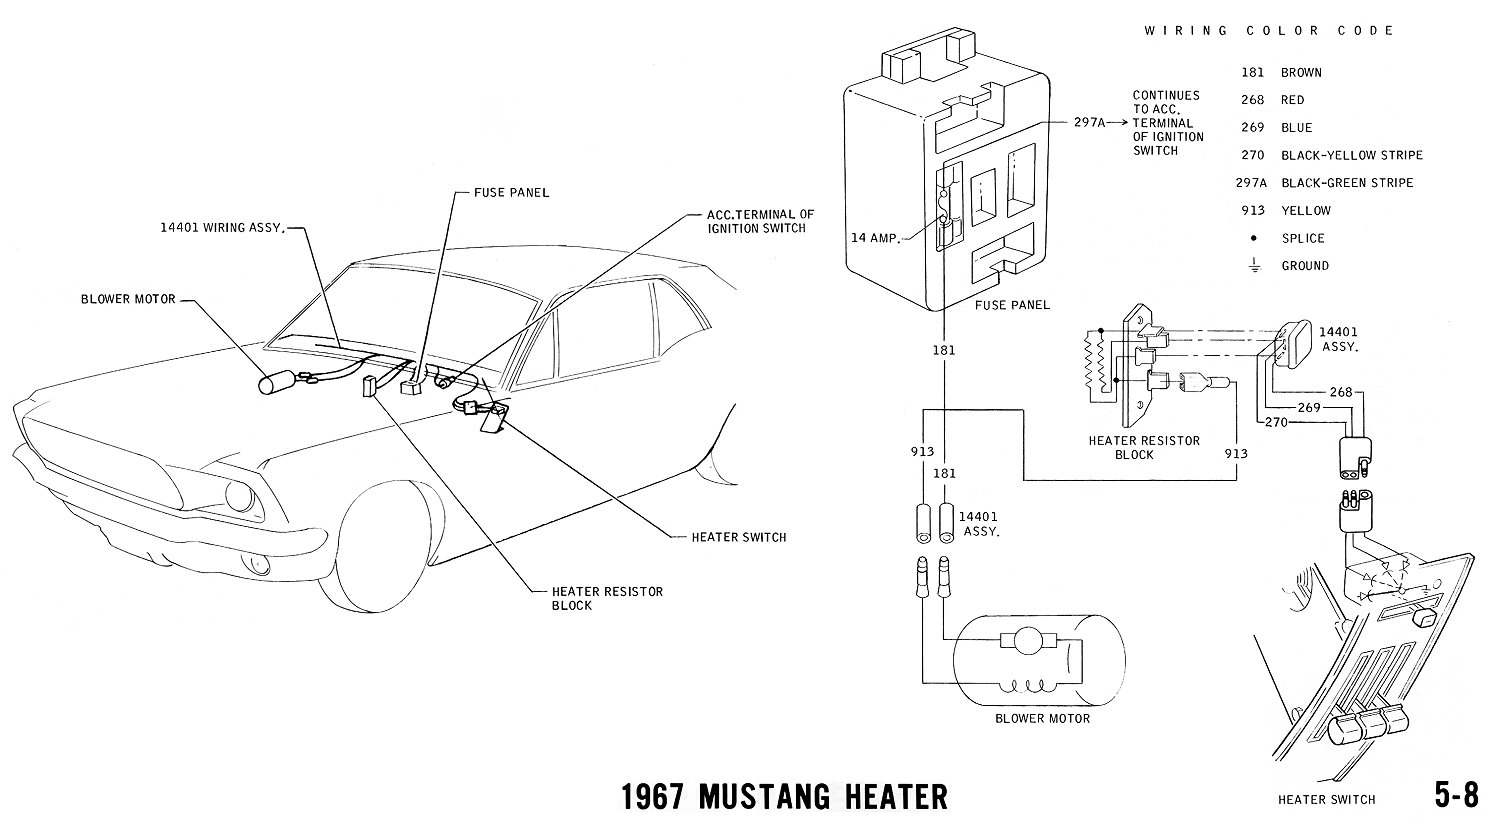 67heater 1967 mustang wiring and vacuum diagrams average joe restoration 1966 mustang neutral safety switch wiring diagram at edmiracle.co